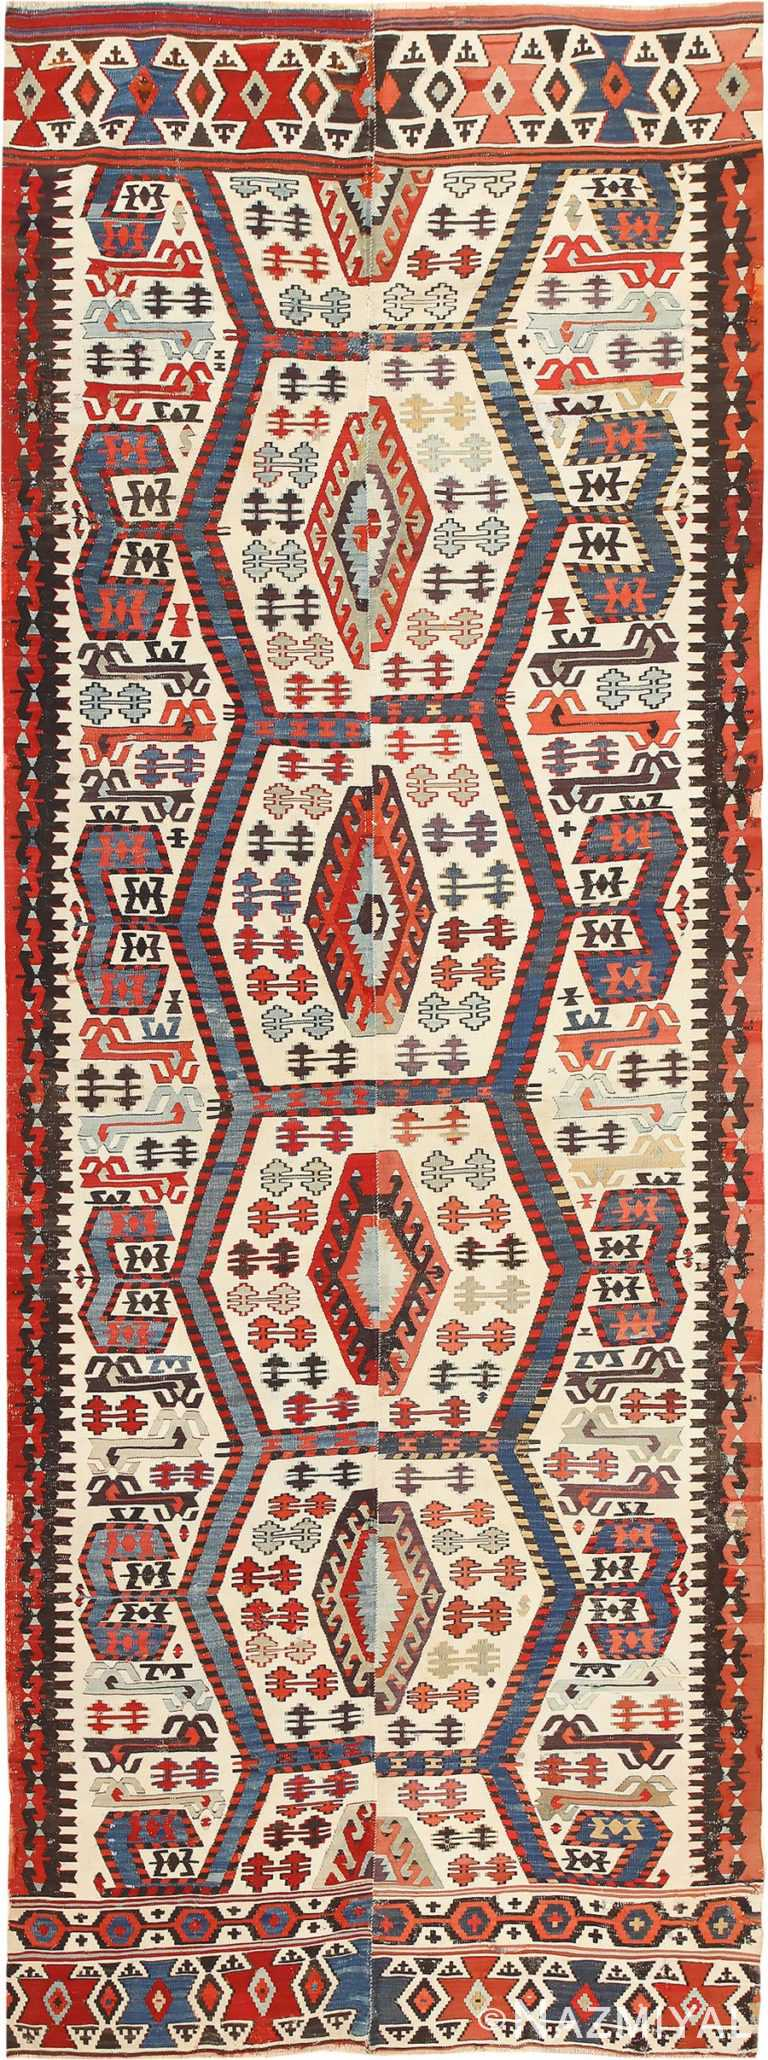 Tribal Antique 19th Century Turkish Kilim 48609 Nazmiyal